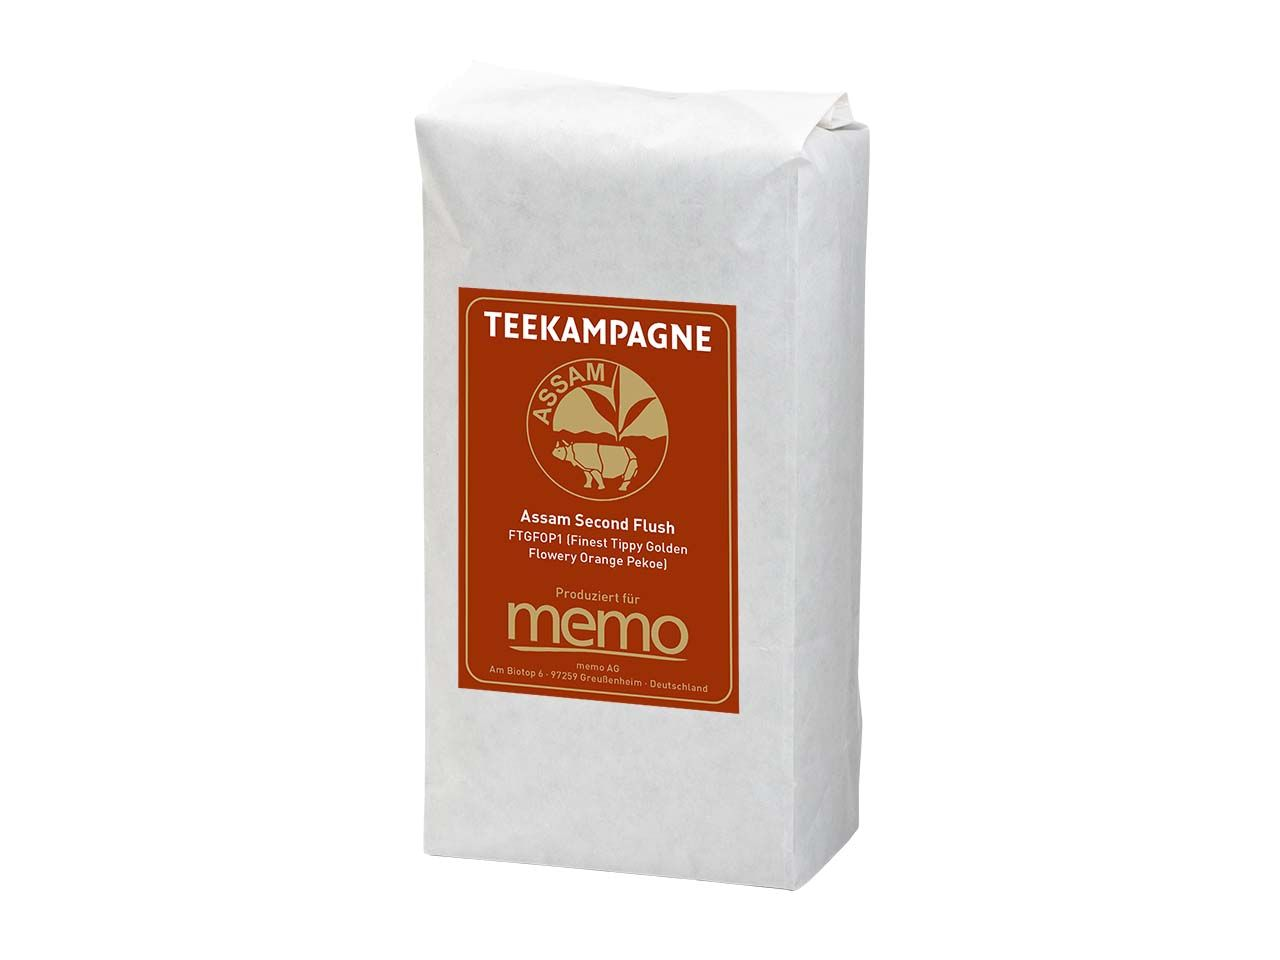 memo/Teekampagne Schwarzer Bio-Tee Assam Second Flush, FTGFOP1, 500 g Assam Second Flush FTGFOP1